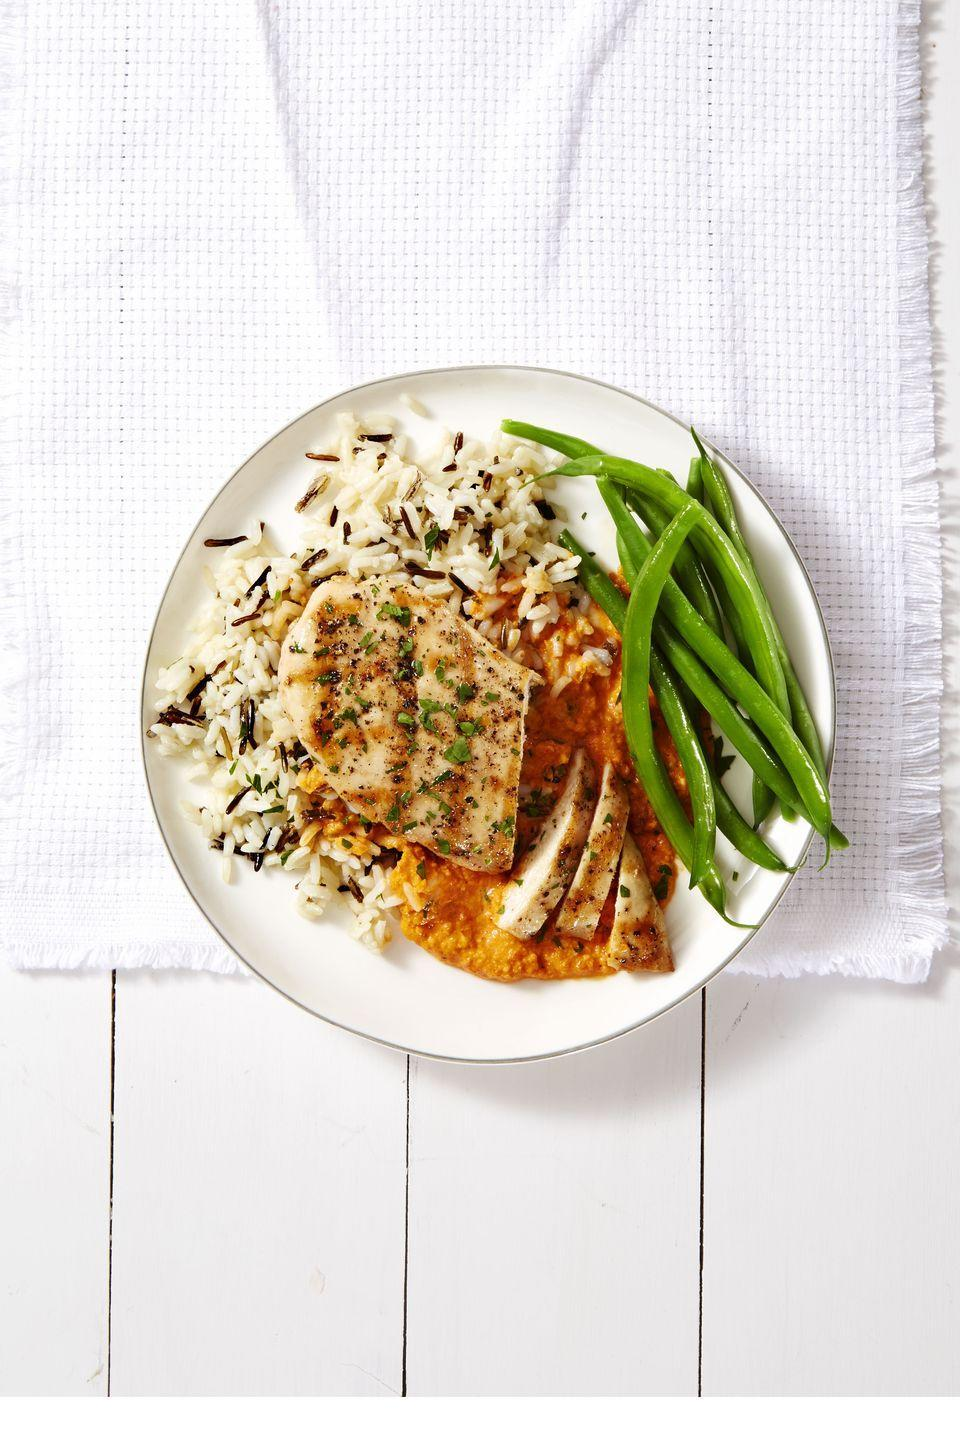 "<p>What is Romesco, you ask? Consider this Catalonian condiment as next-level tomato sauce with the addition of nuts, peppers, garlic, and sherry vinegar. </p><p><em><a href=""https://www.goodhousekeeping.com/food-recipes/a39948/grilled-chicken-romesco-recipe/"" rel=""nofollow noopener"" target=""_blank"" data-ylk=""slk:Get the recipe for Grilled Chicken Romesco »"" class=""link rapid-noclick-resp"">Get the recipe for Grilled Chicken Romesco »</a></em></p>"